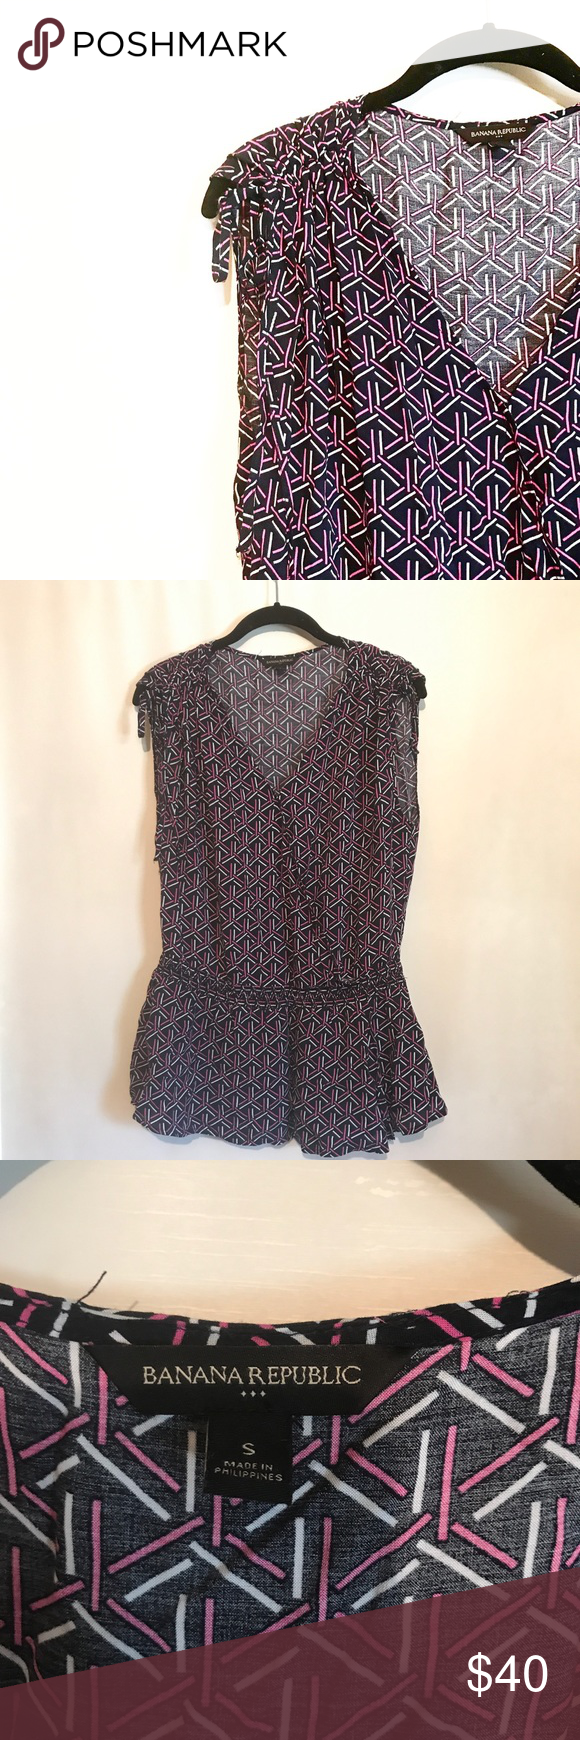 Banana Republic Printed Wrap Blouse w/ Tie Detail Like new